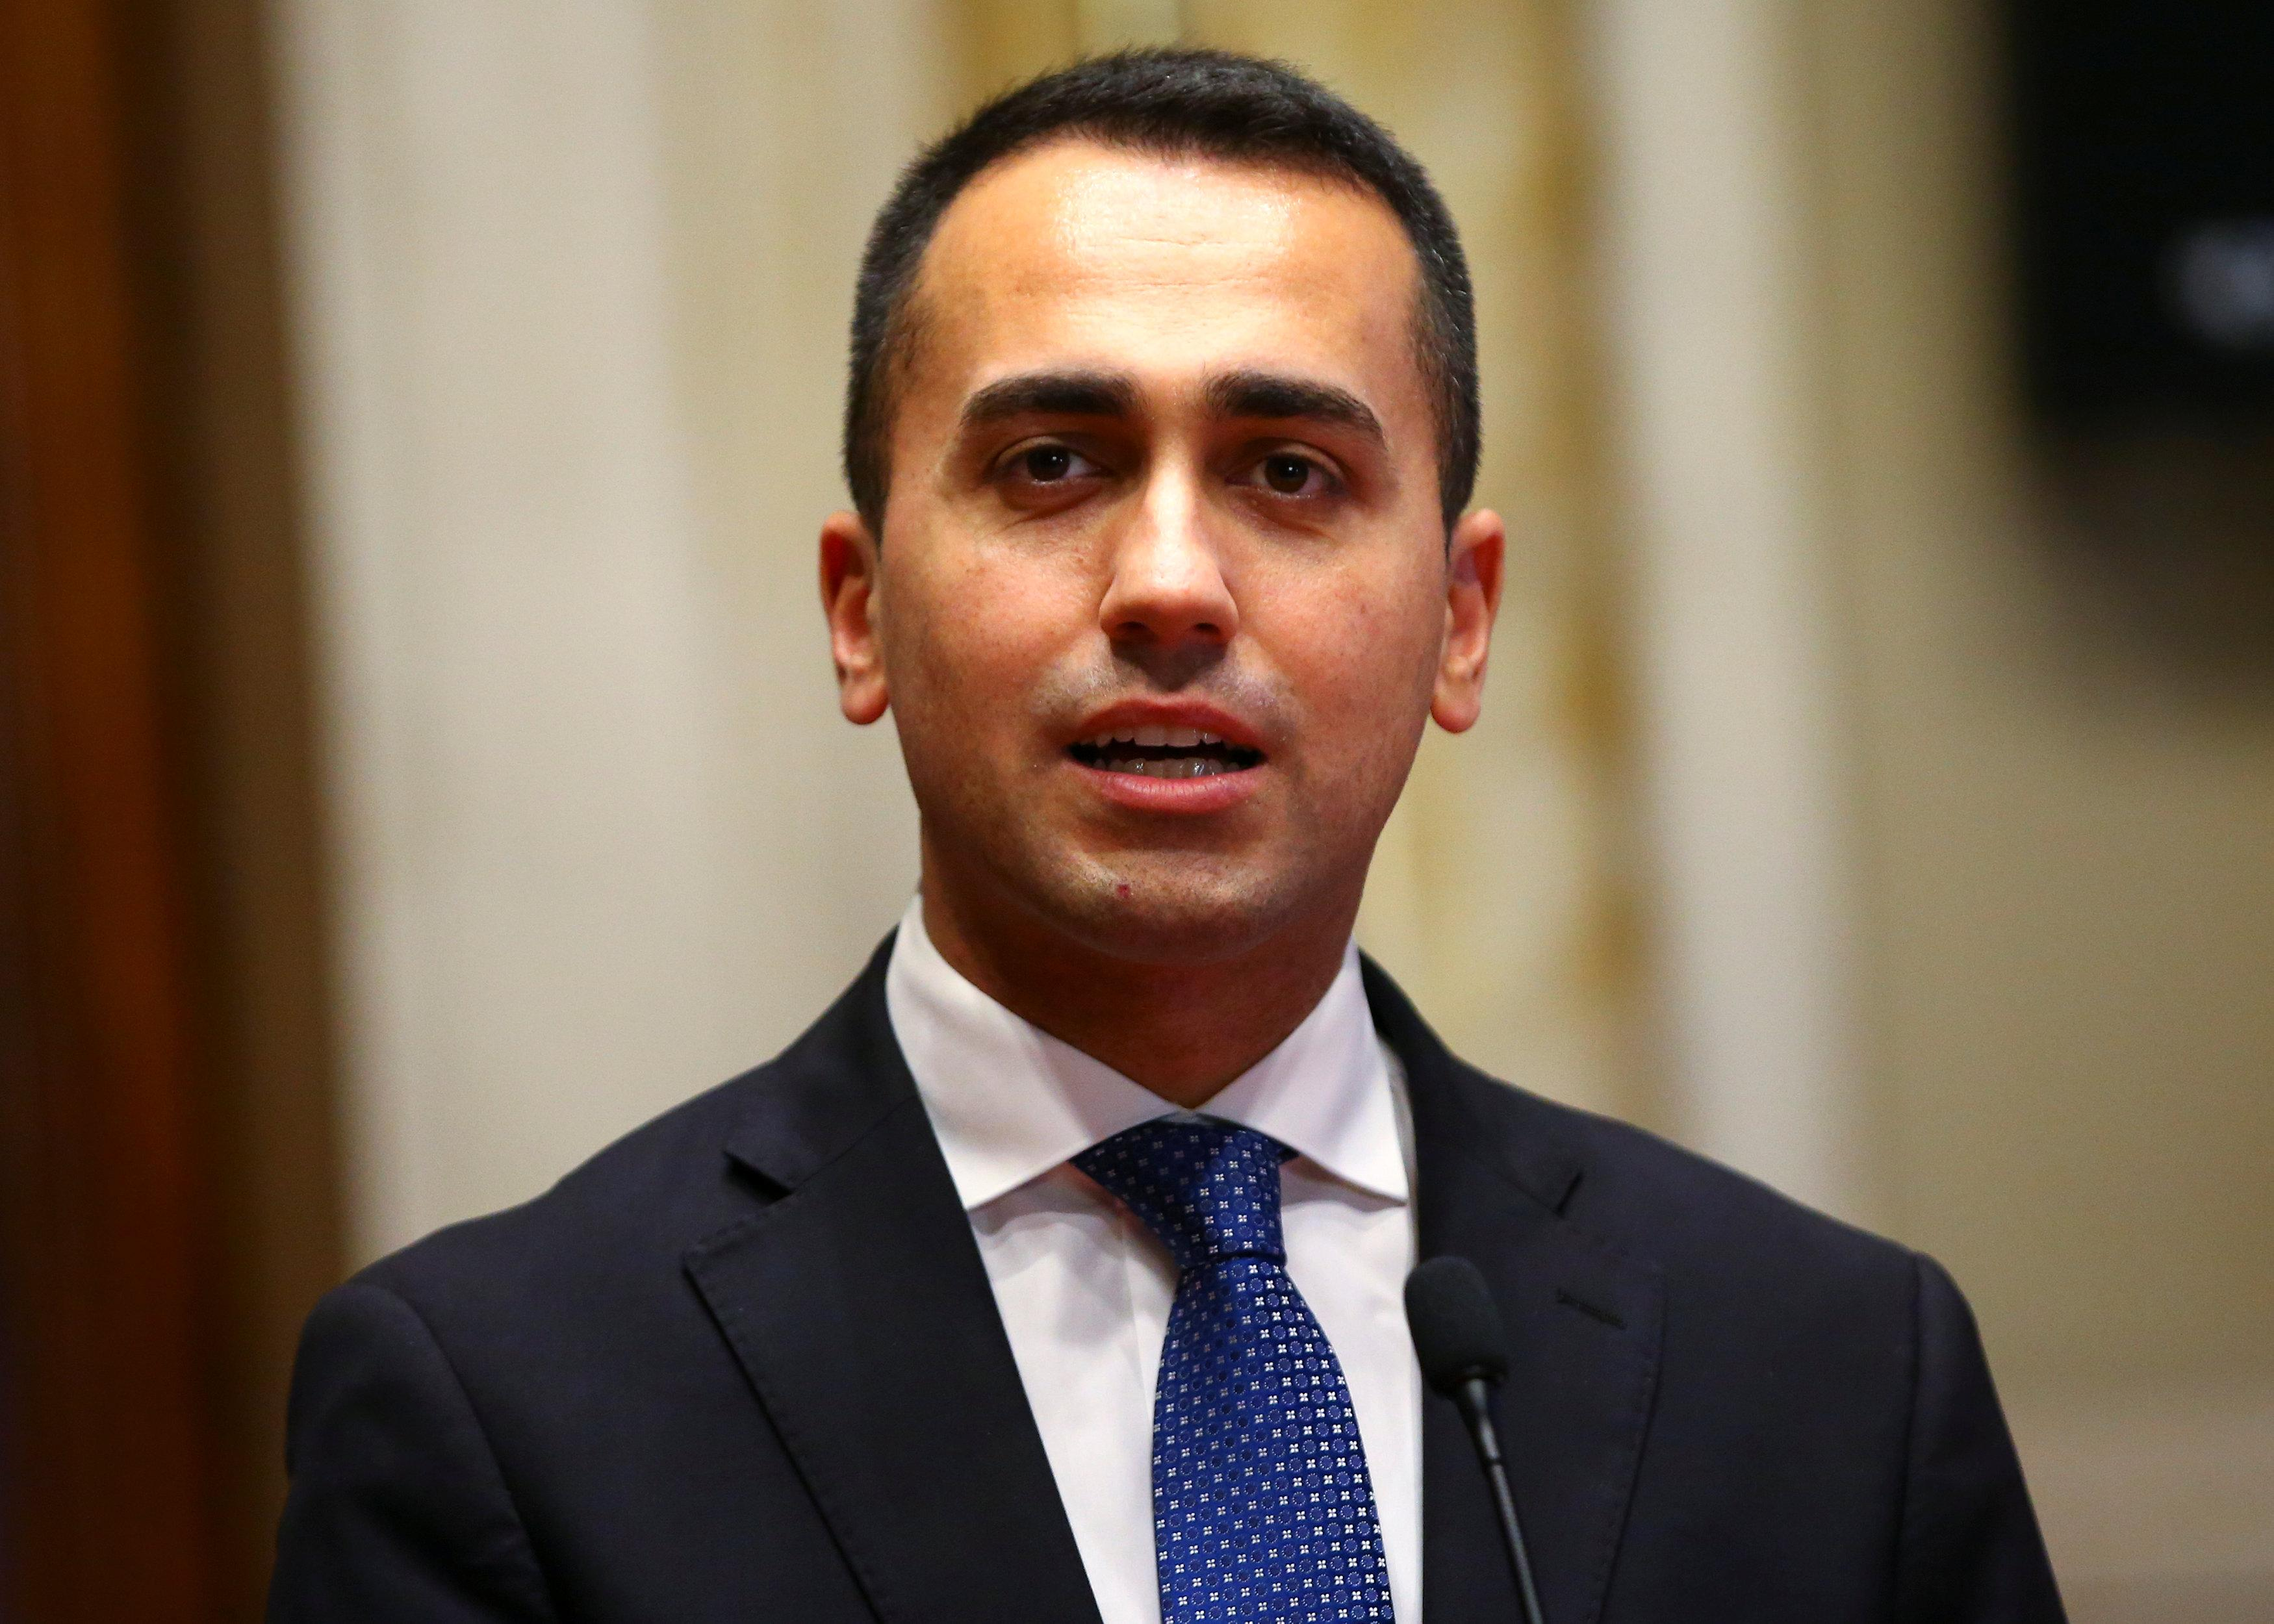 Italy's 5-star movement leader calls for peaceful protests